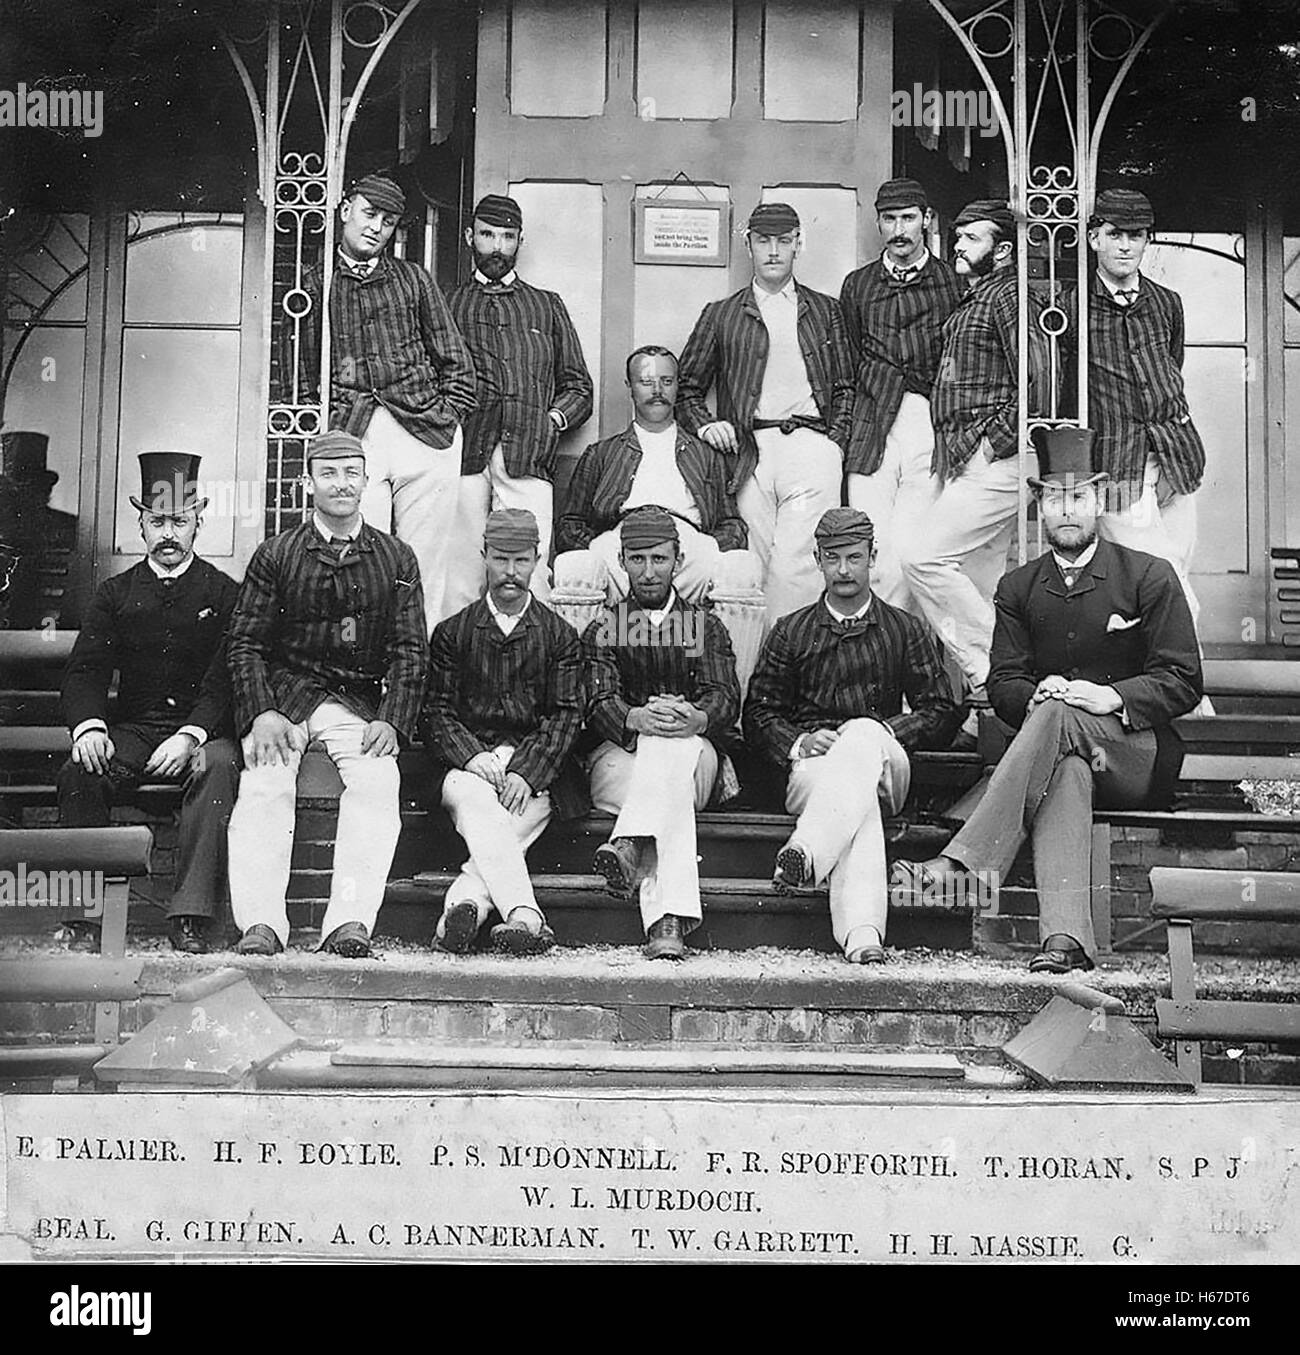 AUSTRALIAN CRICKET TOUR OF ENGLAND TEAM 1882. Photo New South Wales State Library - Stock Image